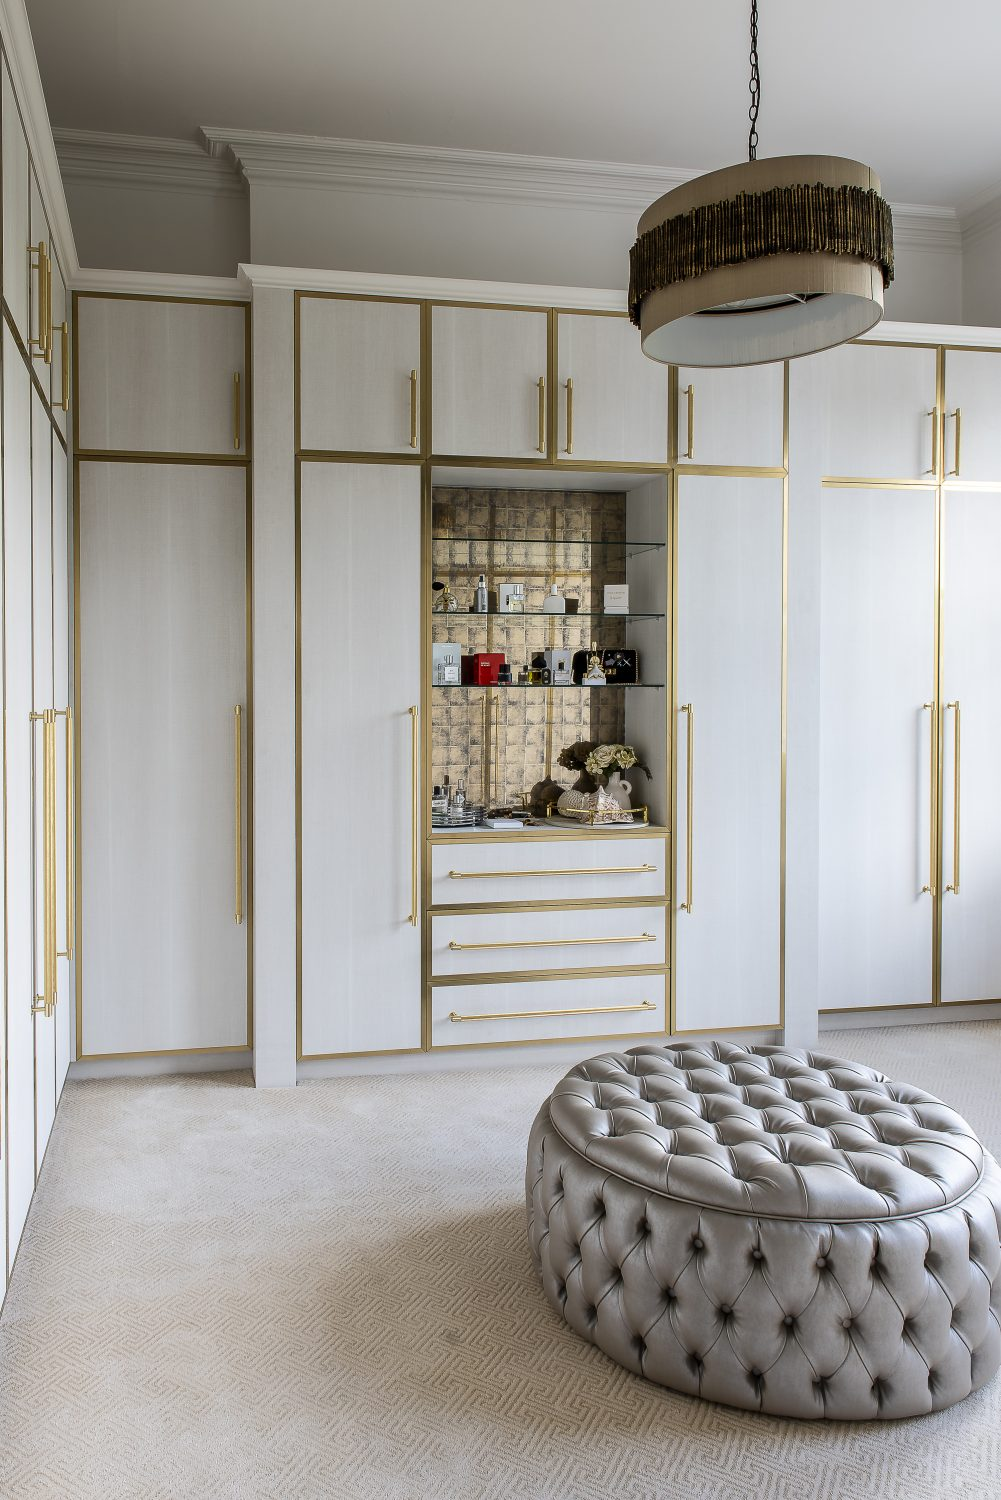 Beyond Joinery in London created with Xylocleaf panels and polished brass edges in Olya's dressing room